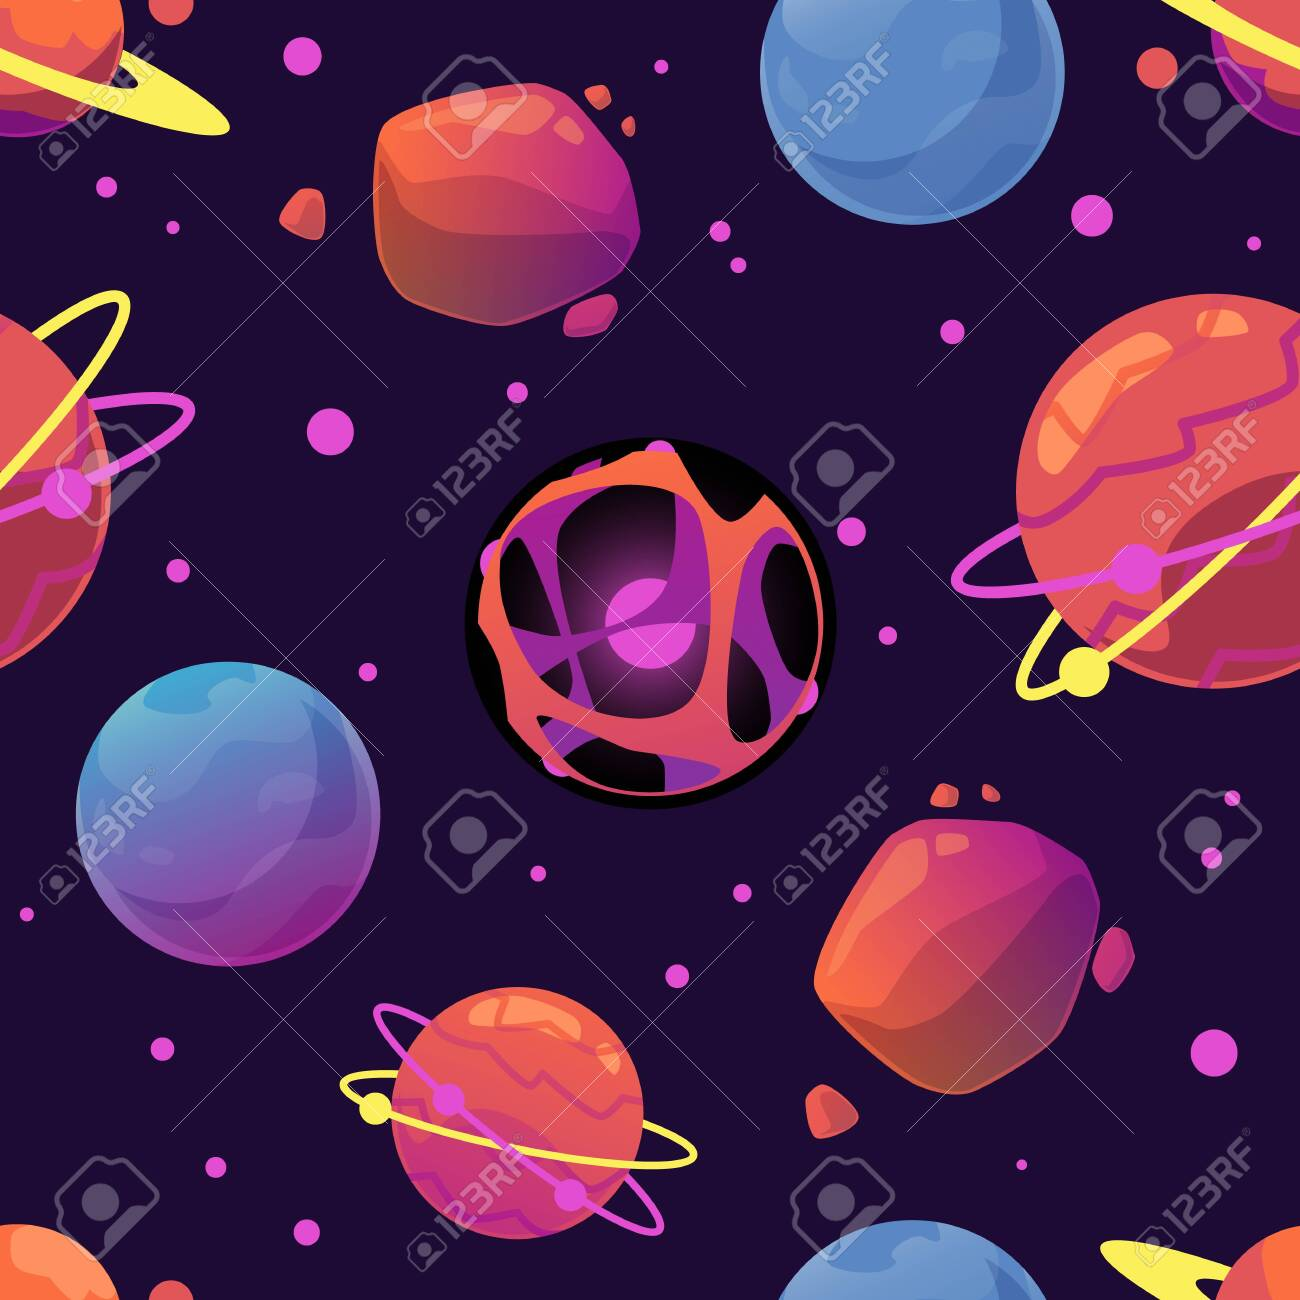 Seamless bright colorful pattern with space planets, flat vector illustration on dark background. Endless repeatable texture with celestial and cosmic elements. - 157495055